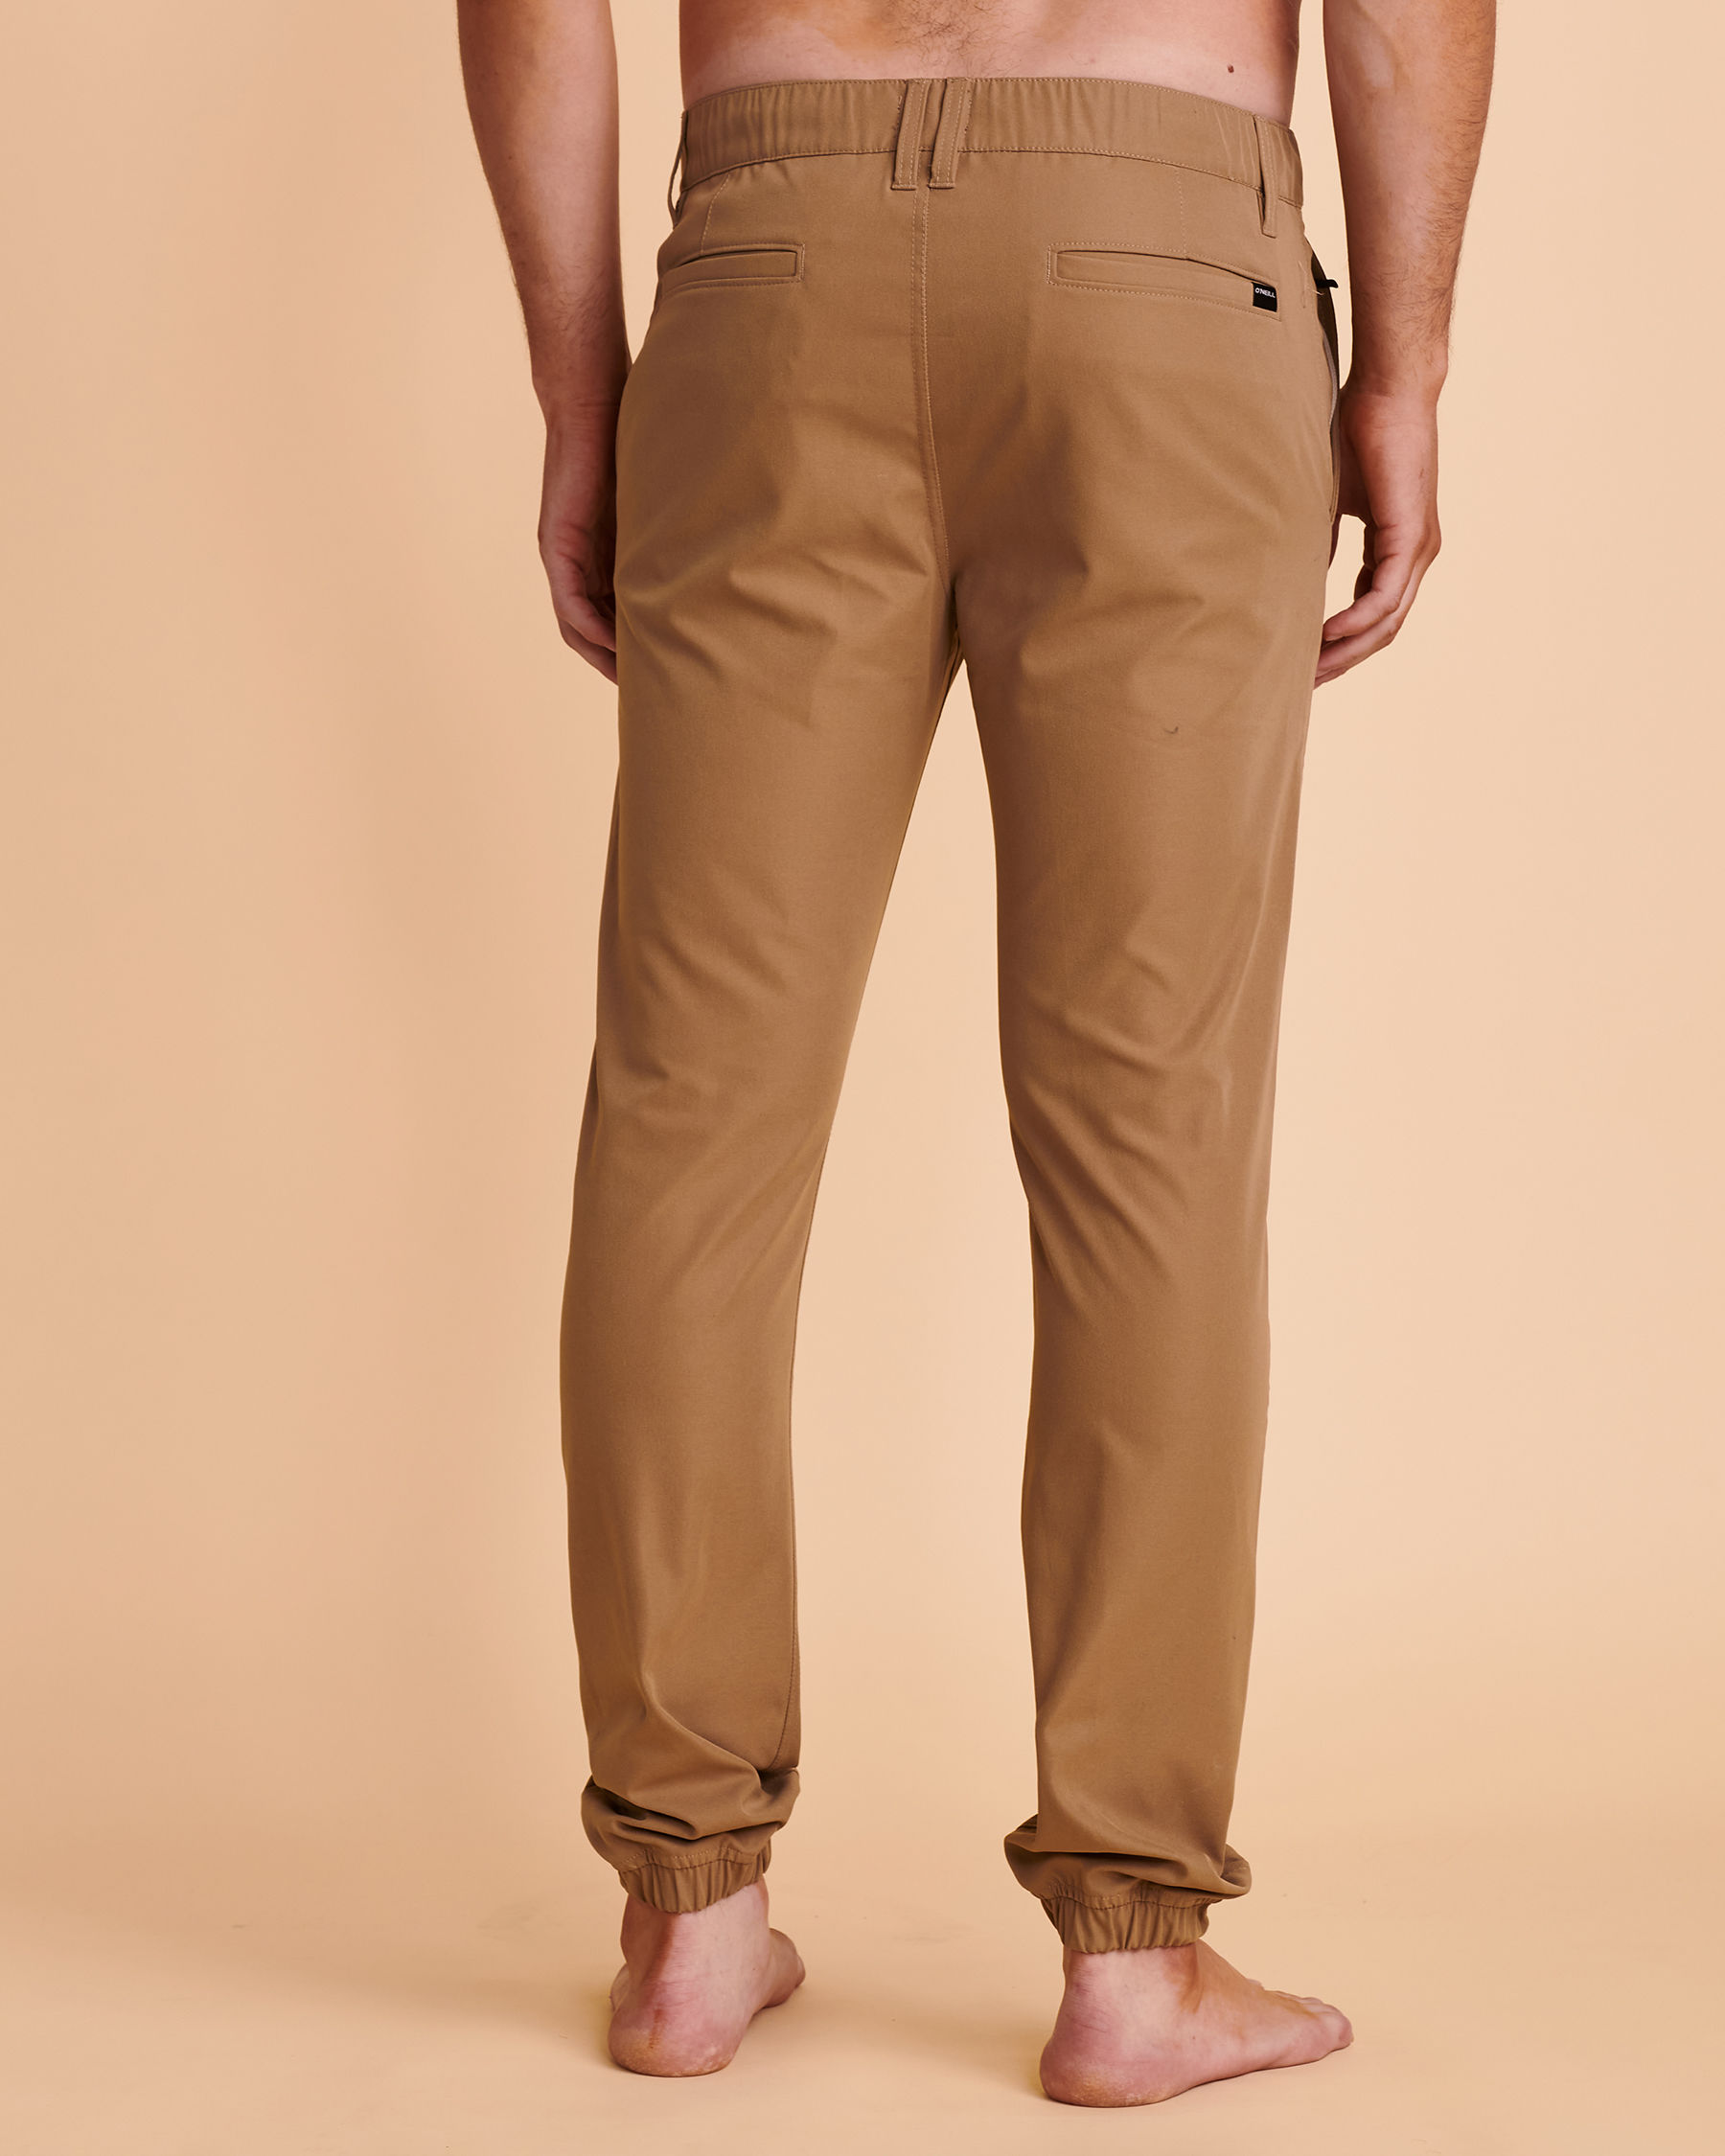 O'NEILL DONNIE Hybrid Pants Camel SP1109101C - View2